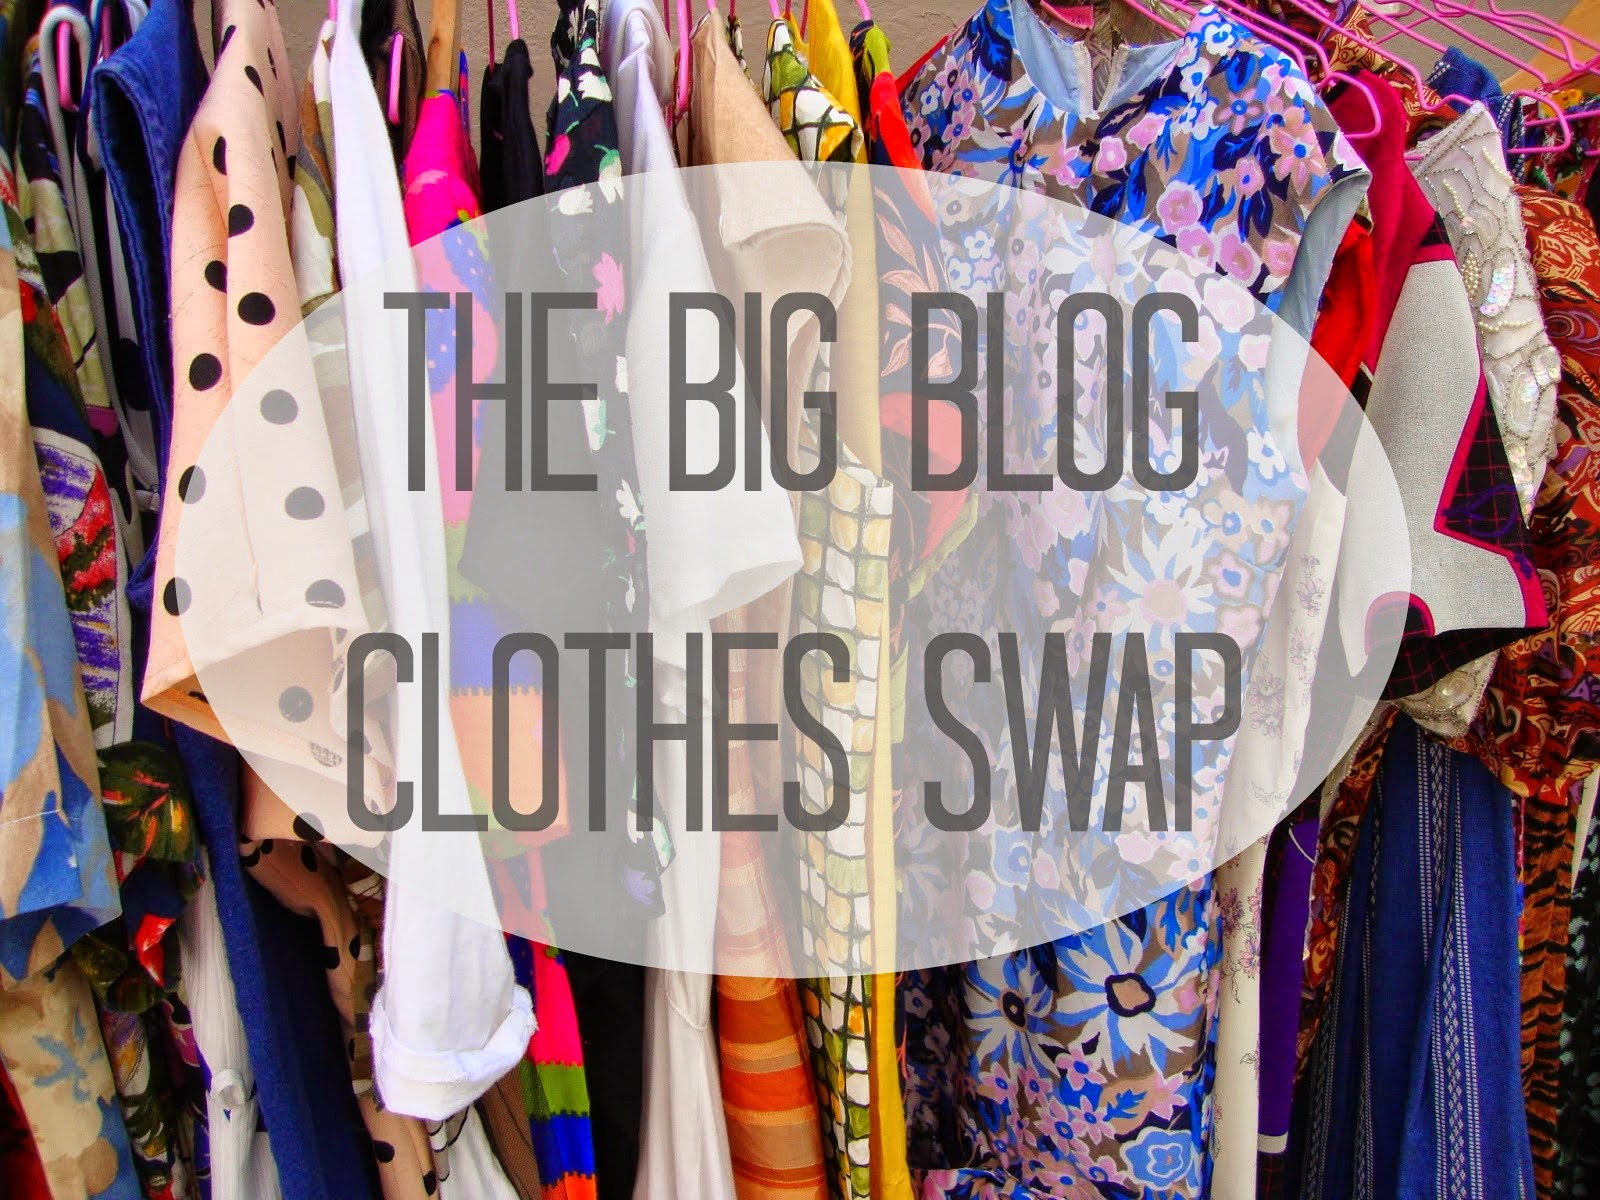 The Big Blog Clothes Swap